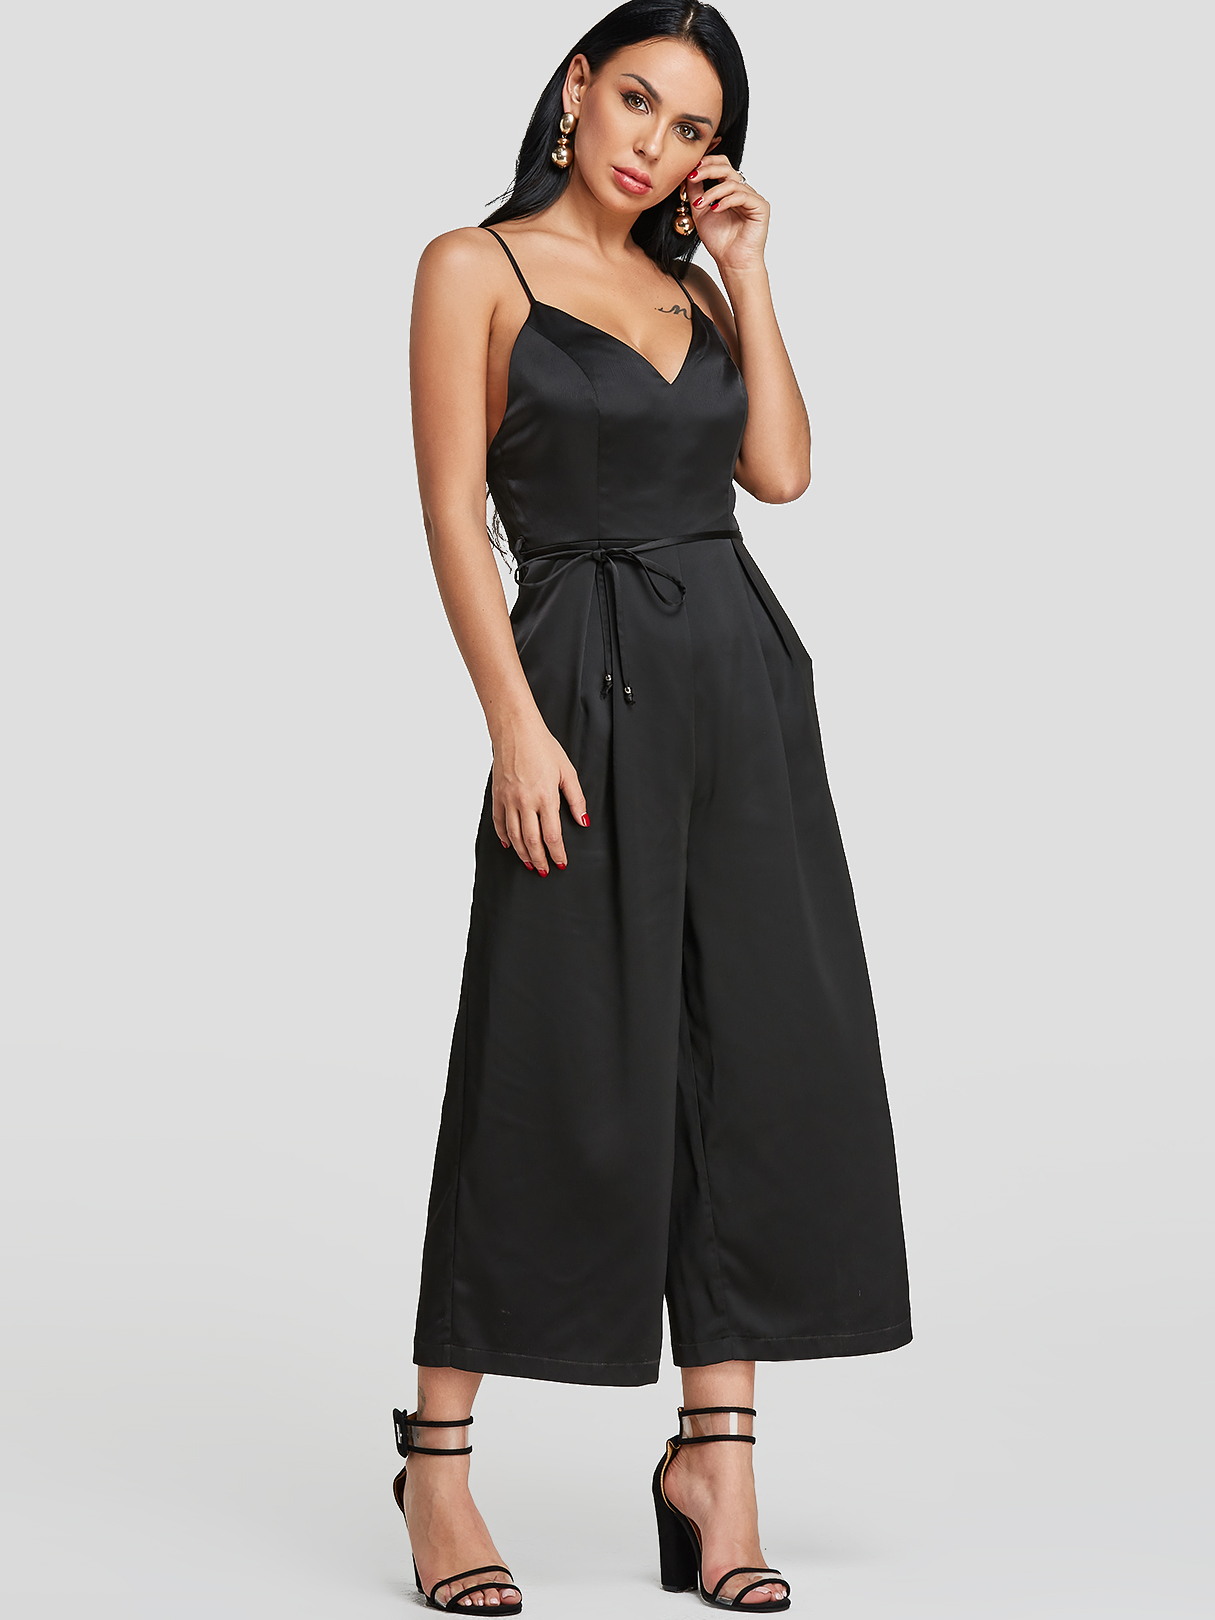 Black Backless Design Spaghetti Wide Leg Jumpsuit